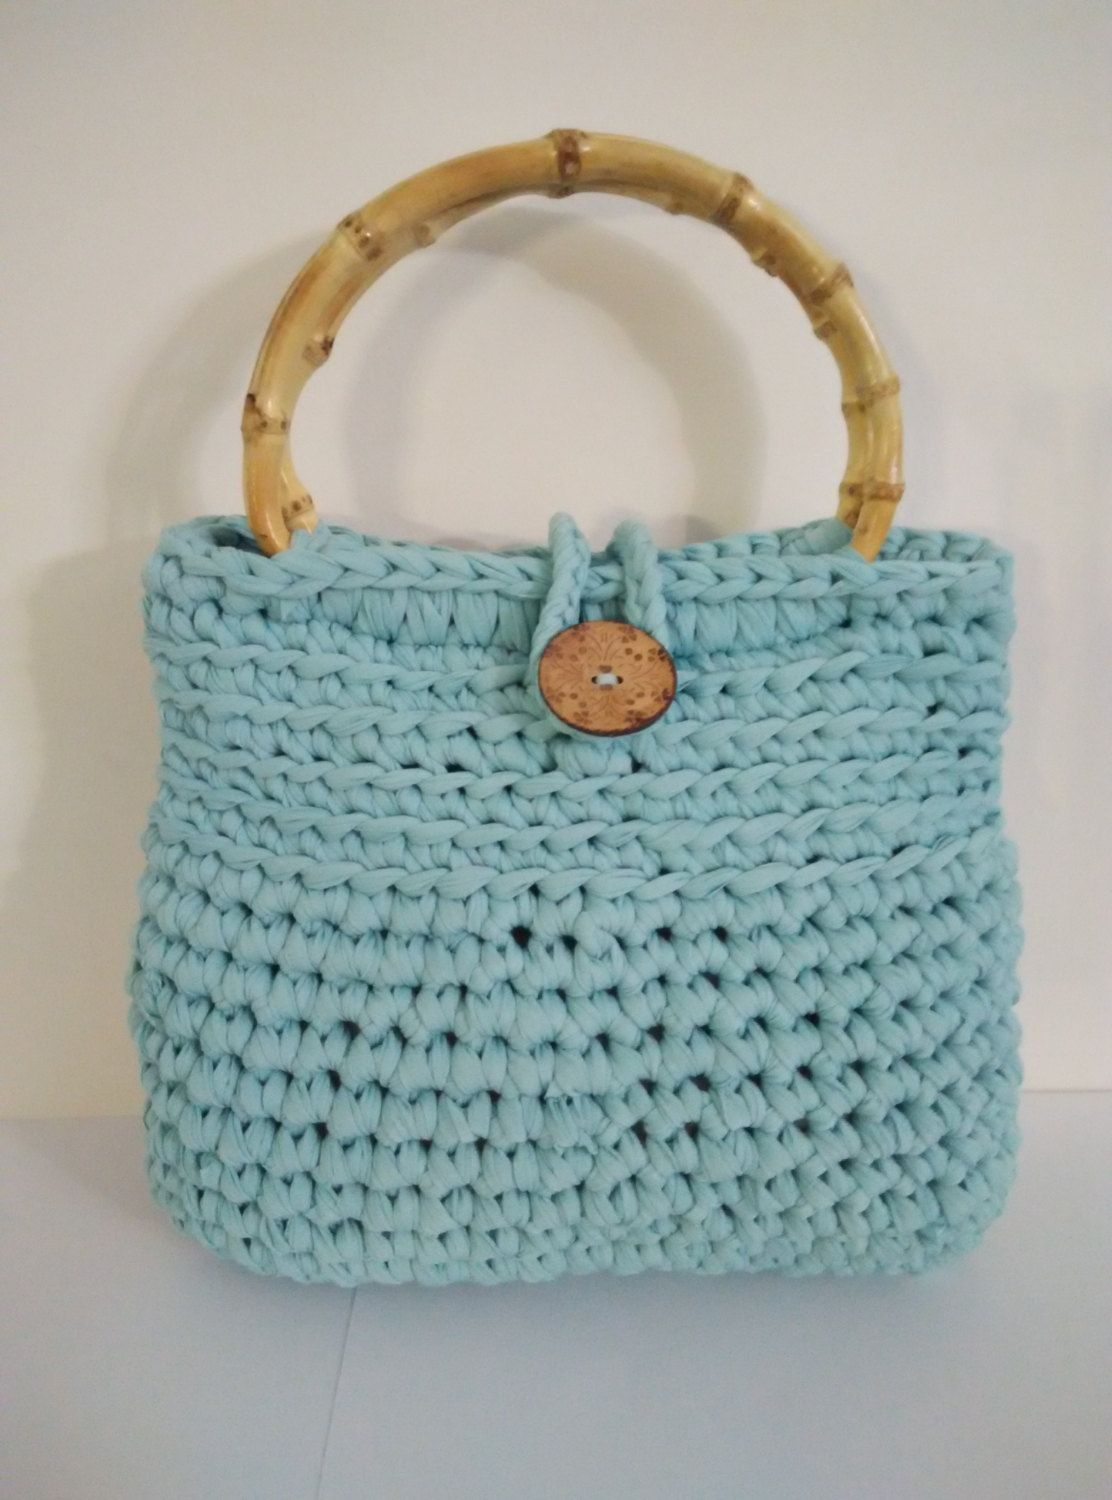 ganchillo camisetas bolsos de ganchillo asas de bamb labios t camisa de hilo yrozaf etsy purse light yarn bag bag purse